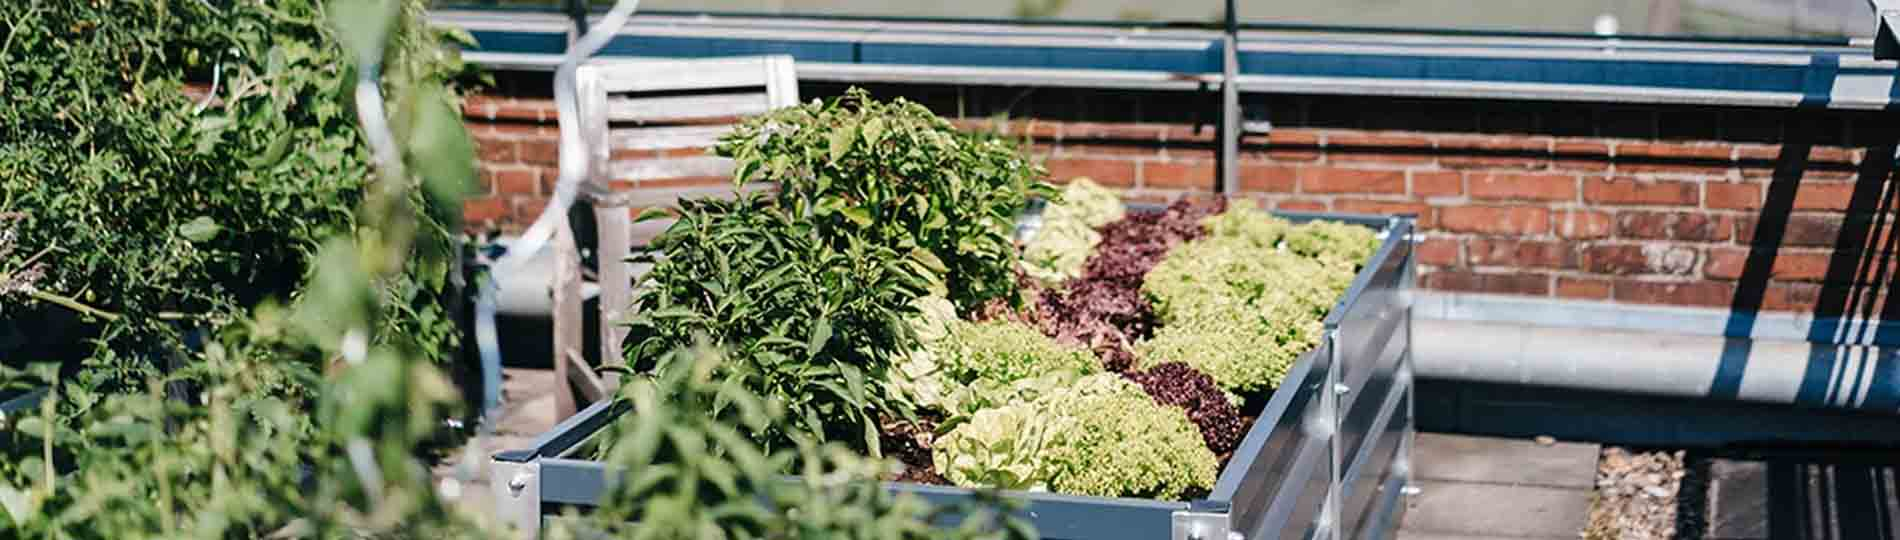 16 Initiatives Changing Urban Agriculture Through Tech and Innovation